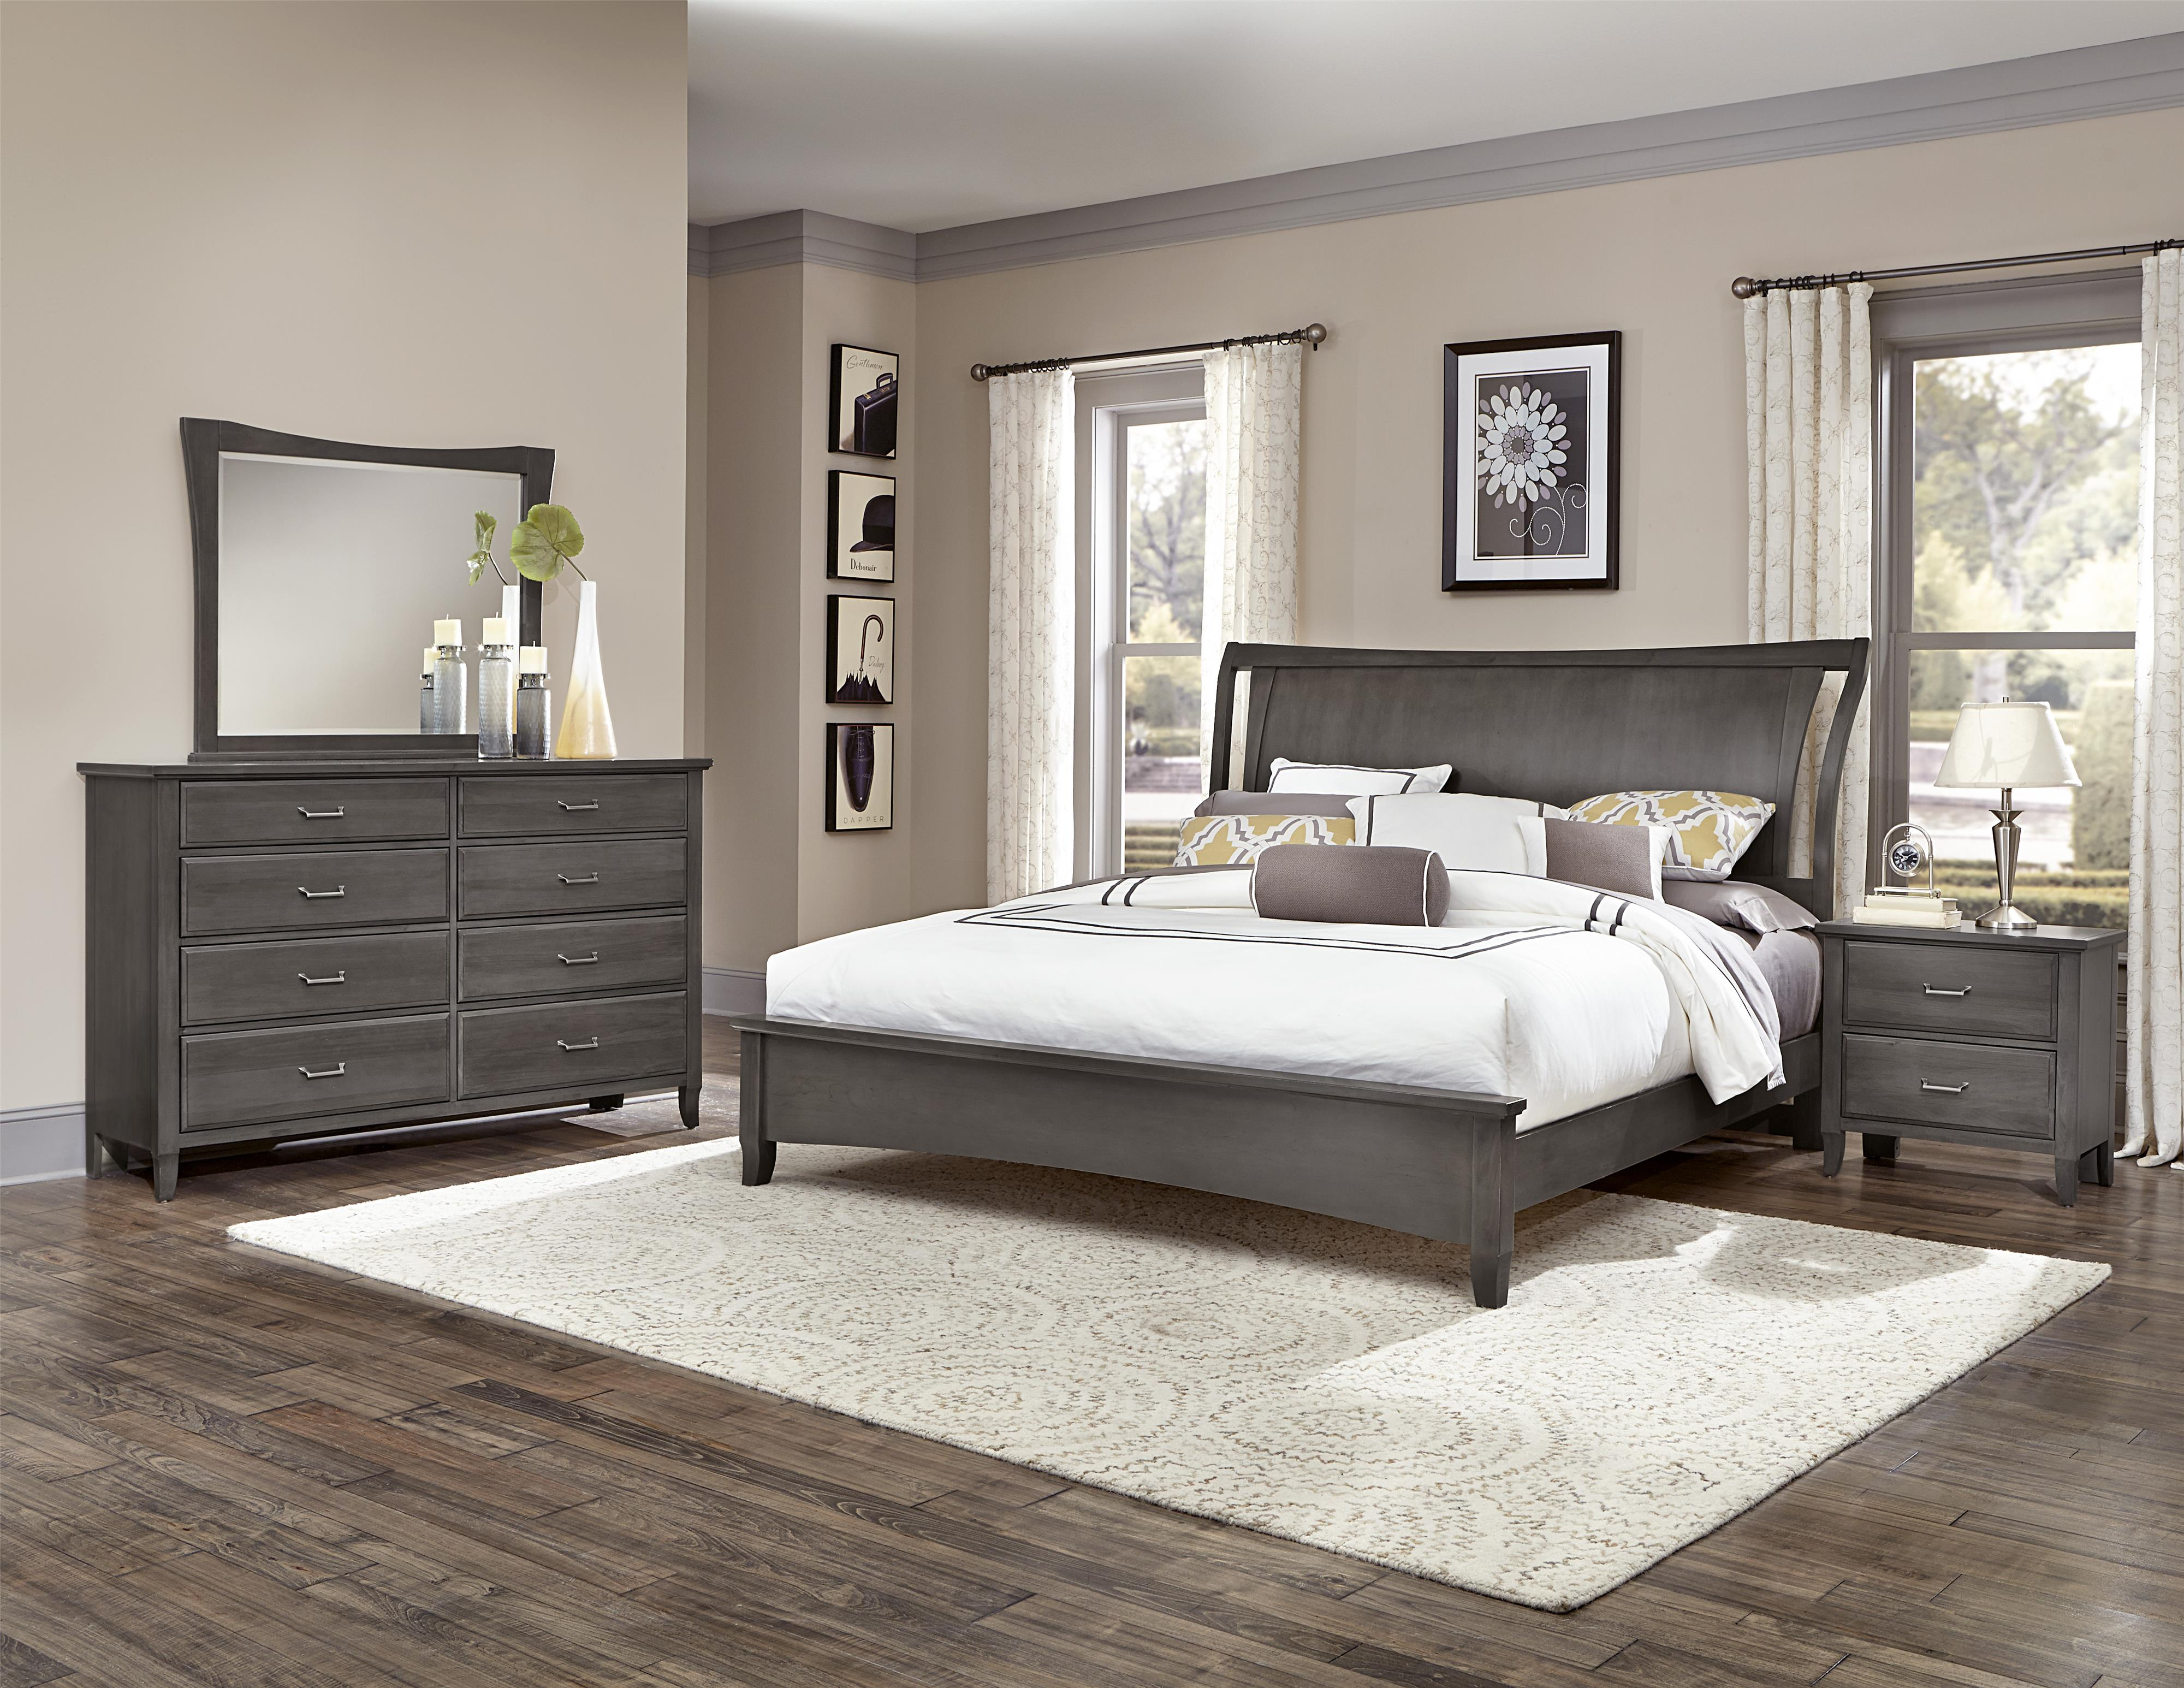 Vaughan Bassett Commentary Full Bedroom Group - Item Number: 394 F Bedroom Group 1